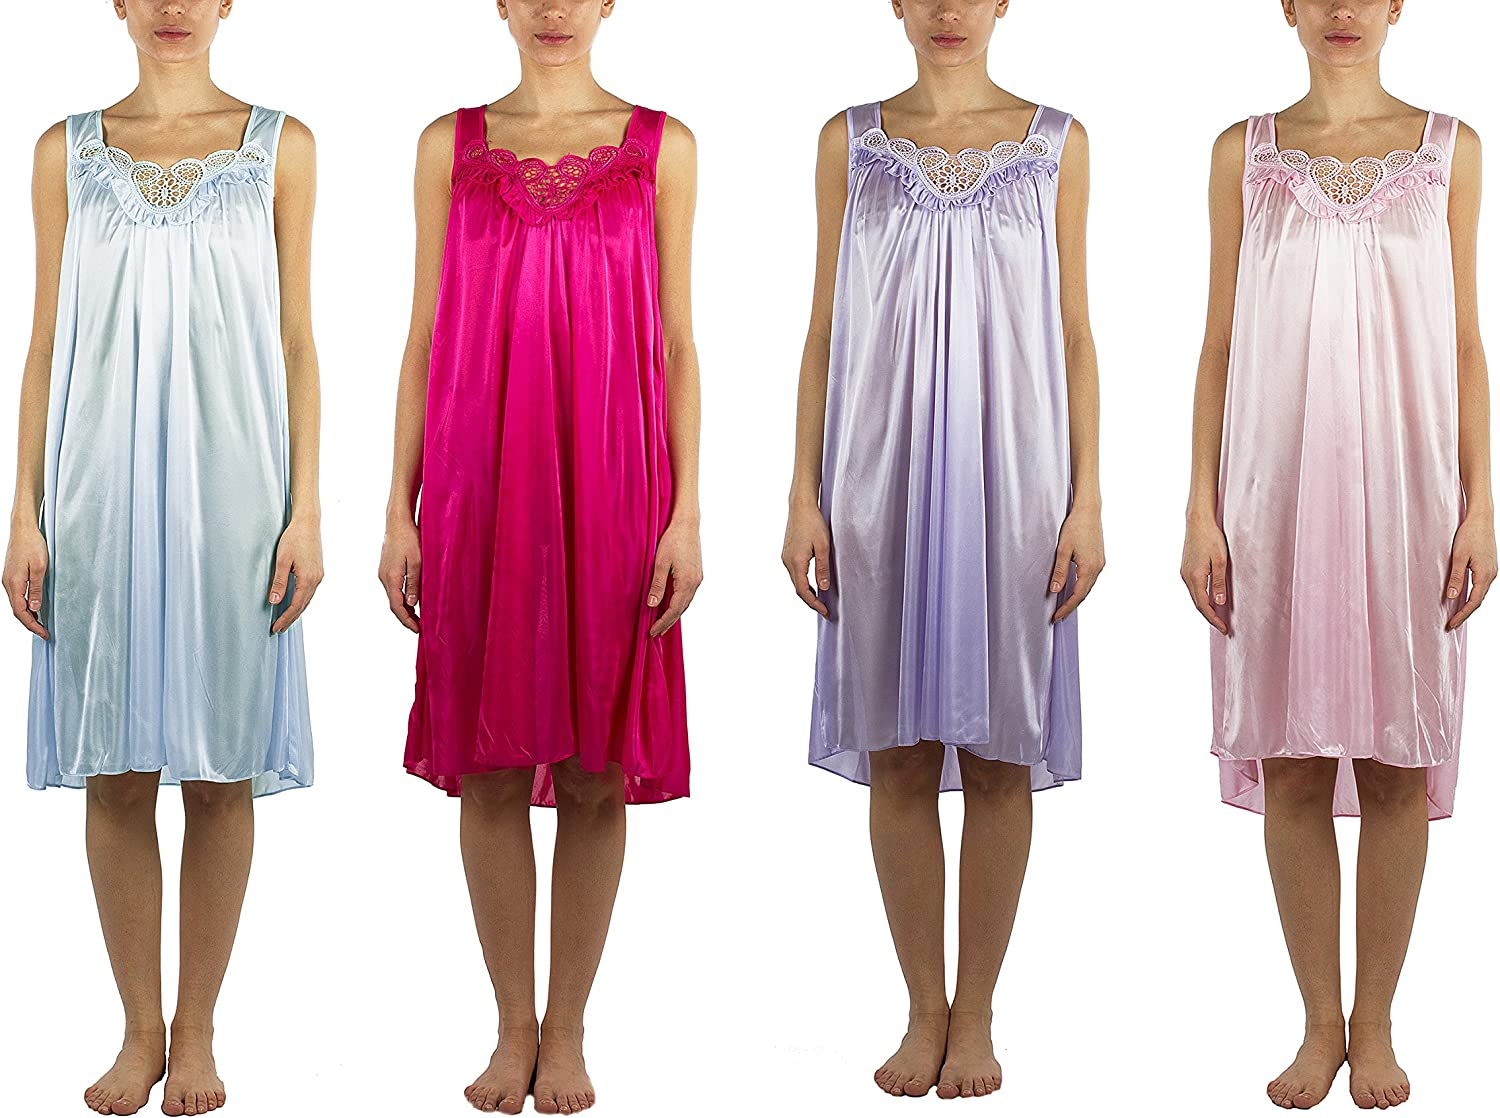 JOTW 4 Pack of Silky Lace Accent Sheer Nightgowns  Medium to 4X Available (9006)